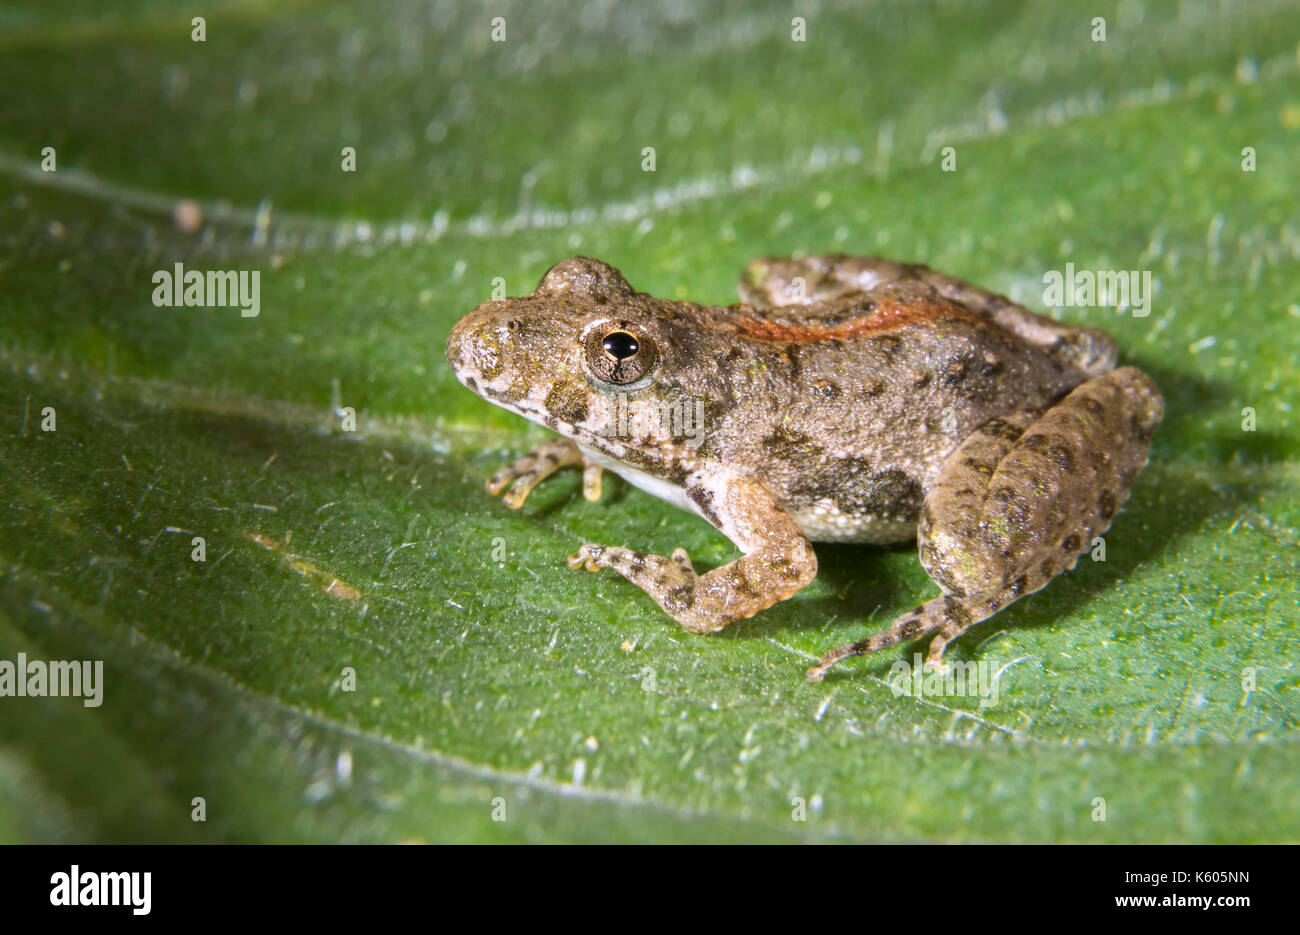 Blanchard's Northern Cricket Frog (Acris crepitans blanchardi) on a leaf, Ames, Iowa, USA Stock Photo